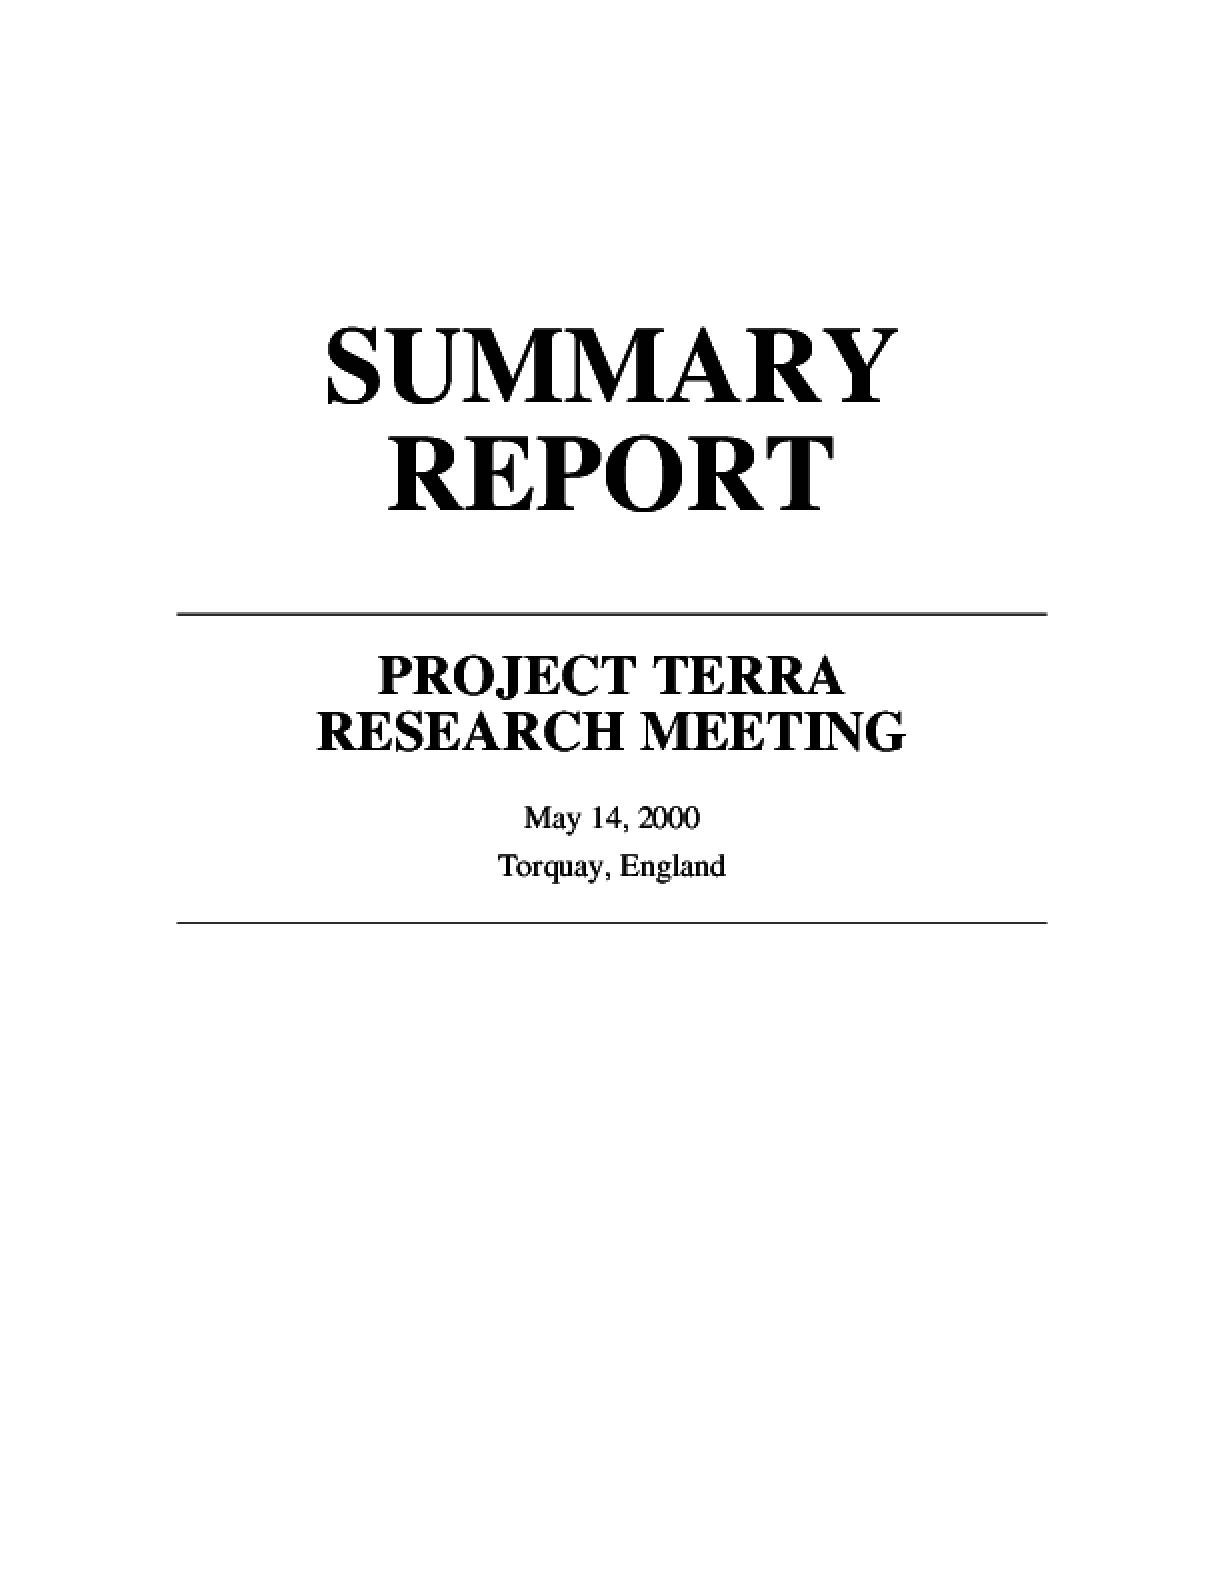 Summary Report: Project Terra Research Meeting